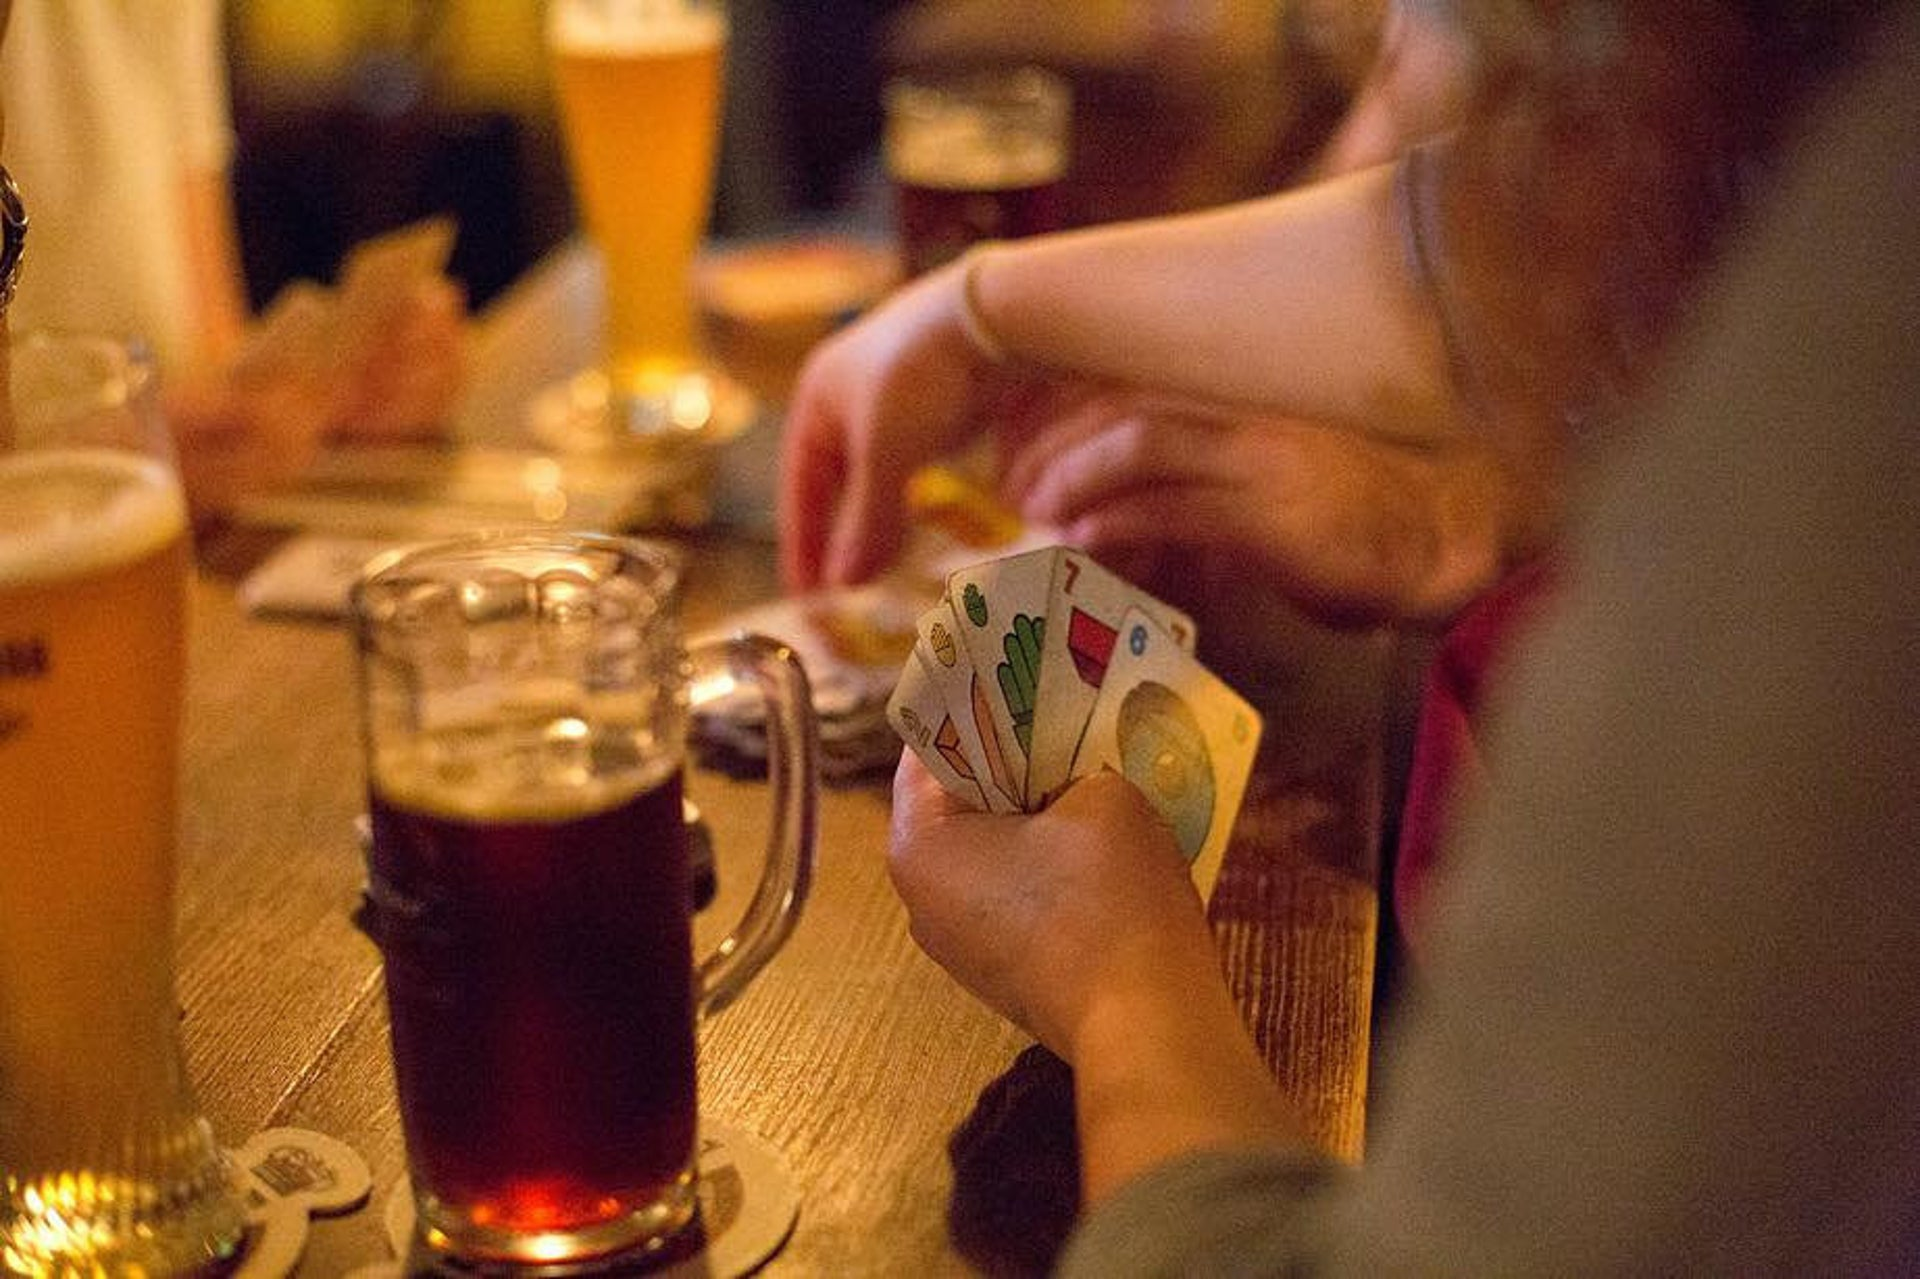 A woman is playing the favorite Israeli card game 'Taki' at the Shuffle bar.